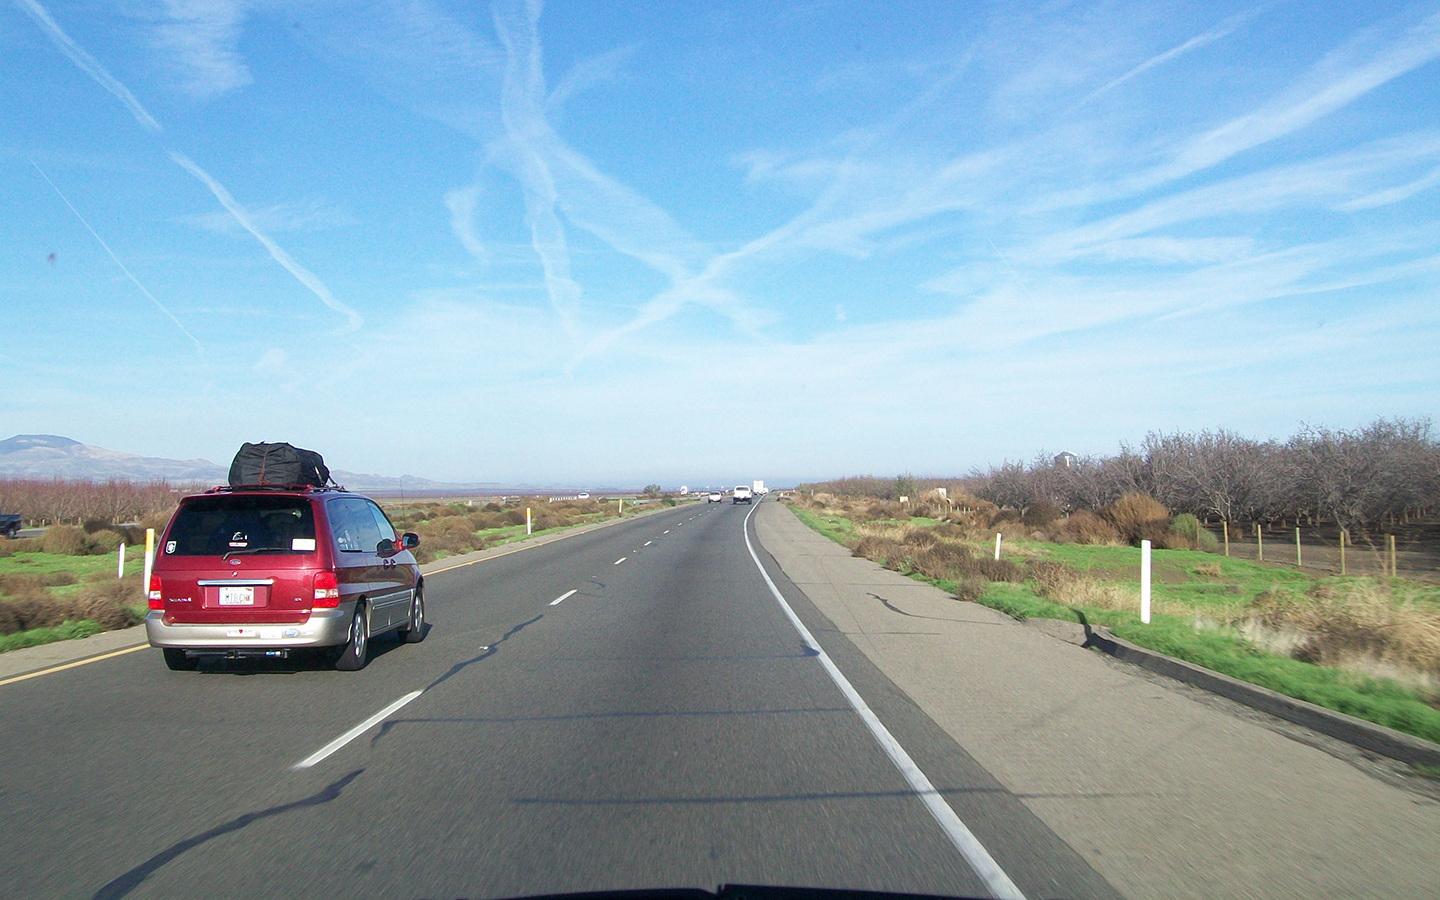 a red minivan travels on an open highway